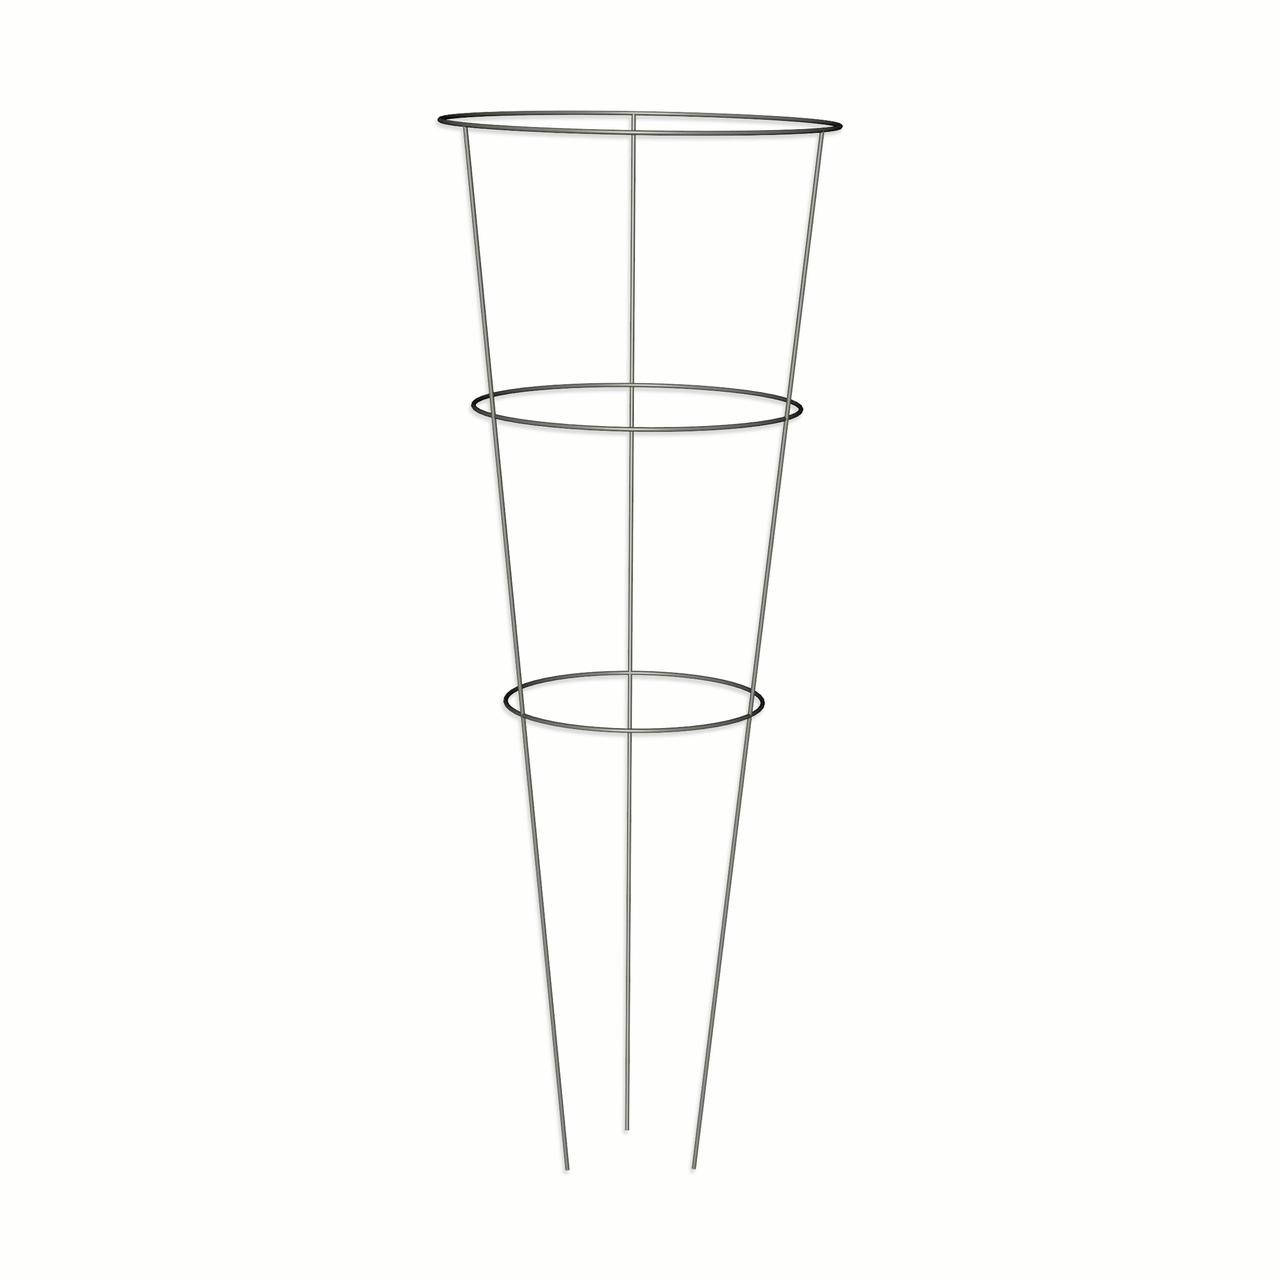 "Galvanized Tomato Cage, 33"" X 12"", 3 Rings And 3 Legs by Panacea Products"